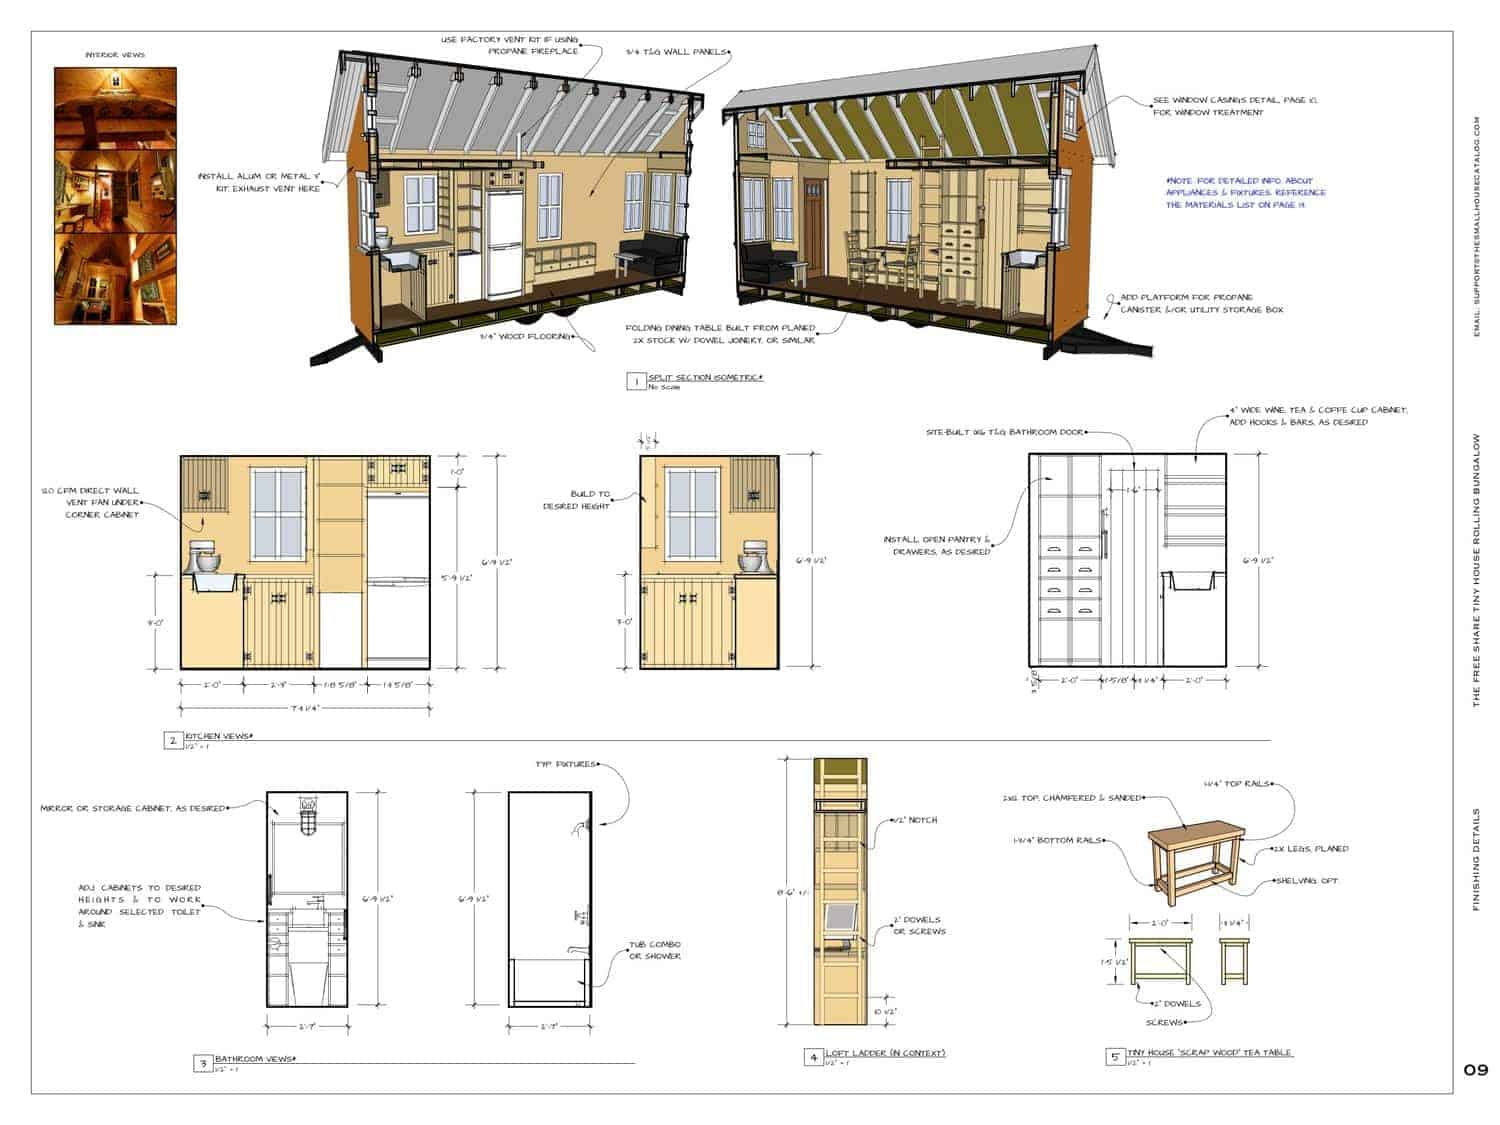 Get free plans to build this adorable tiny bungalow for Tiny house design